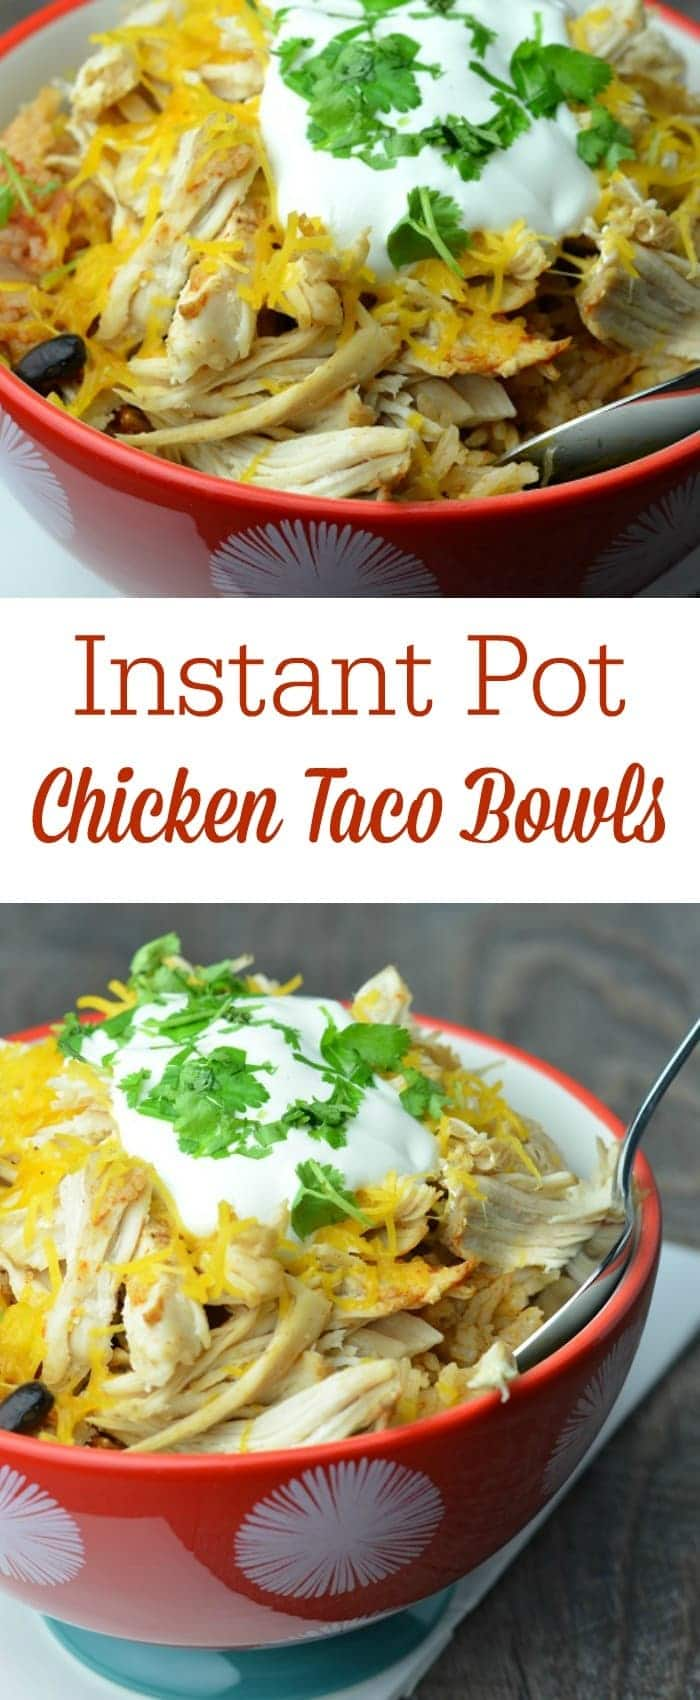 a collage of Instant Pot Chicken Taco Bowls in a red bowl with title text reading Instant Pot Chicken Taco Bowls